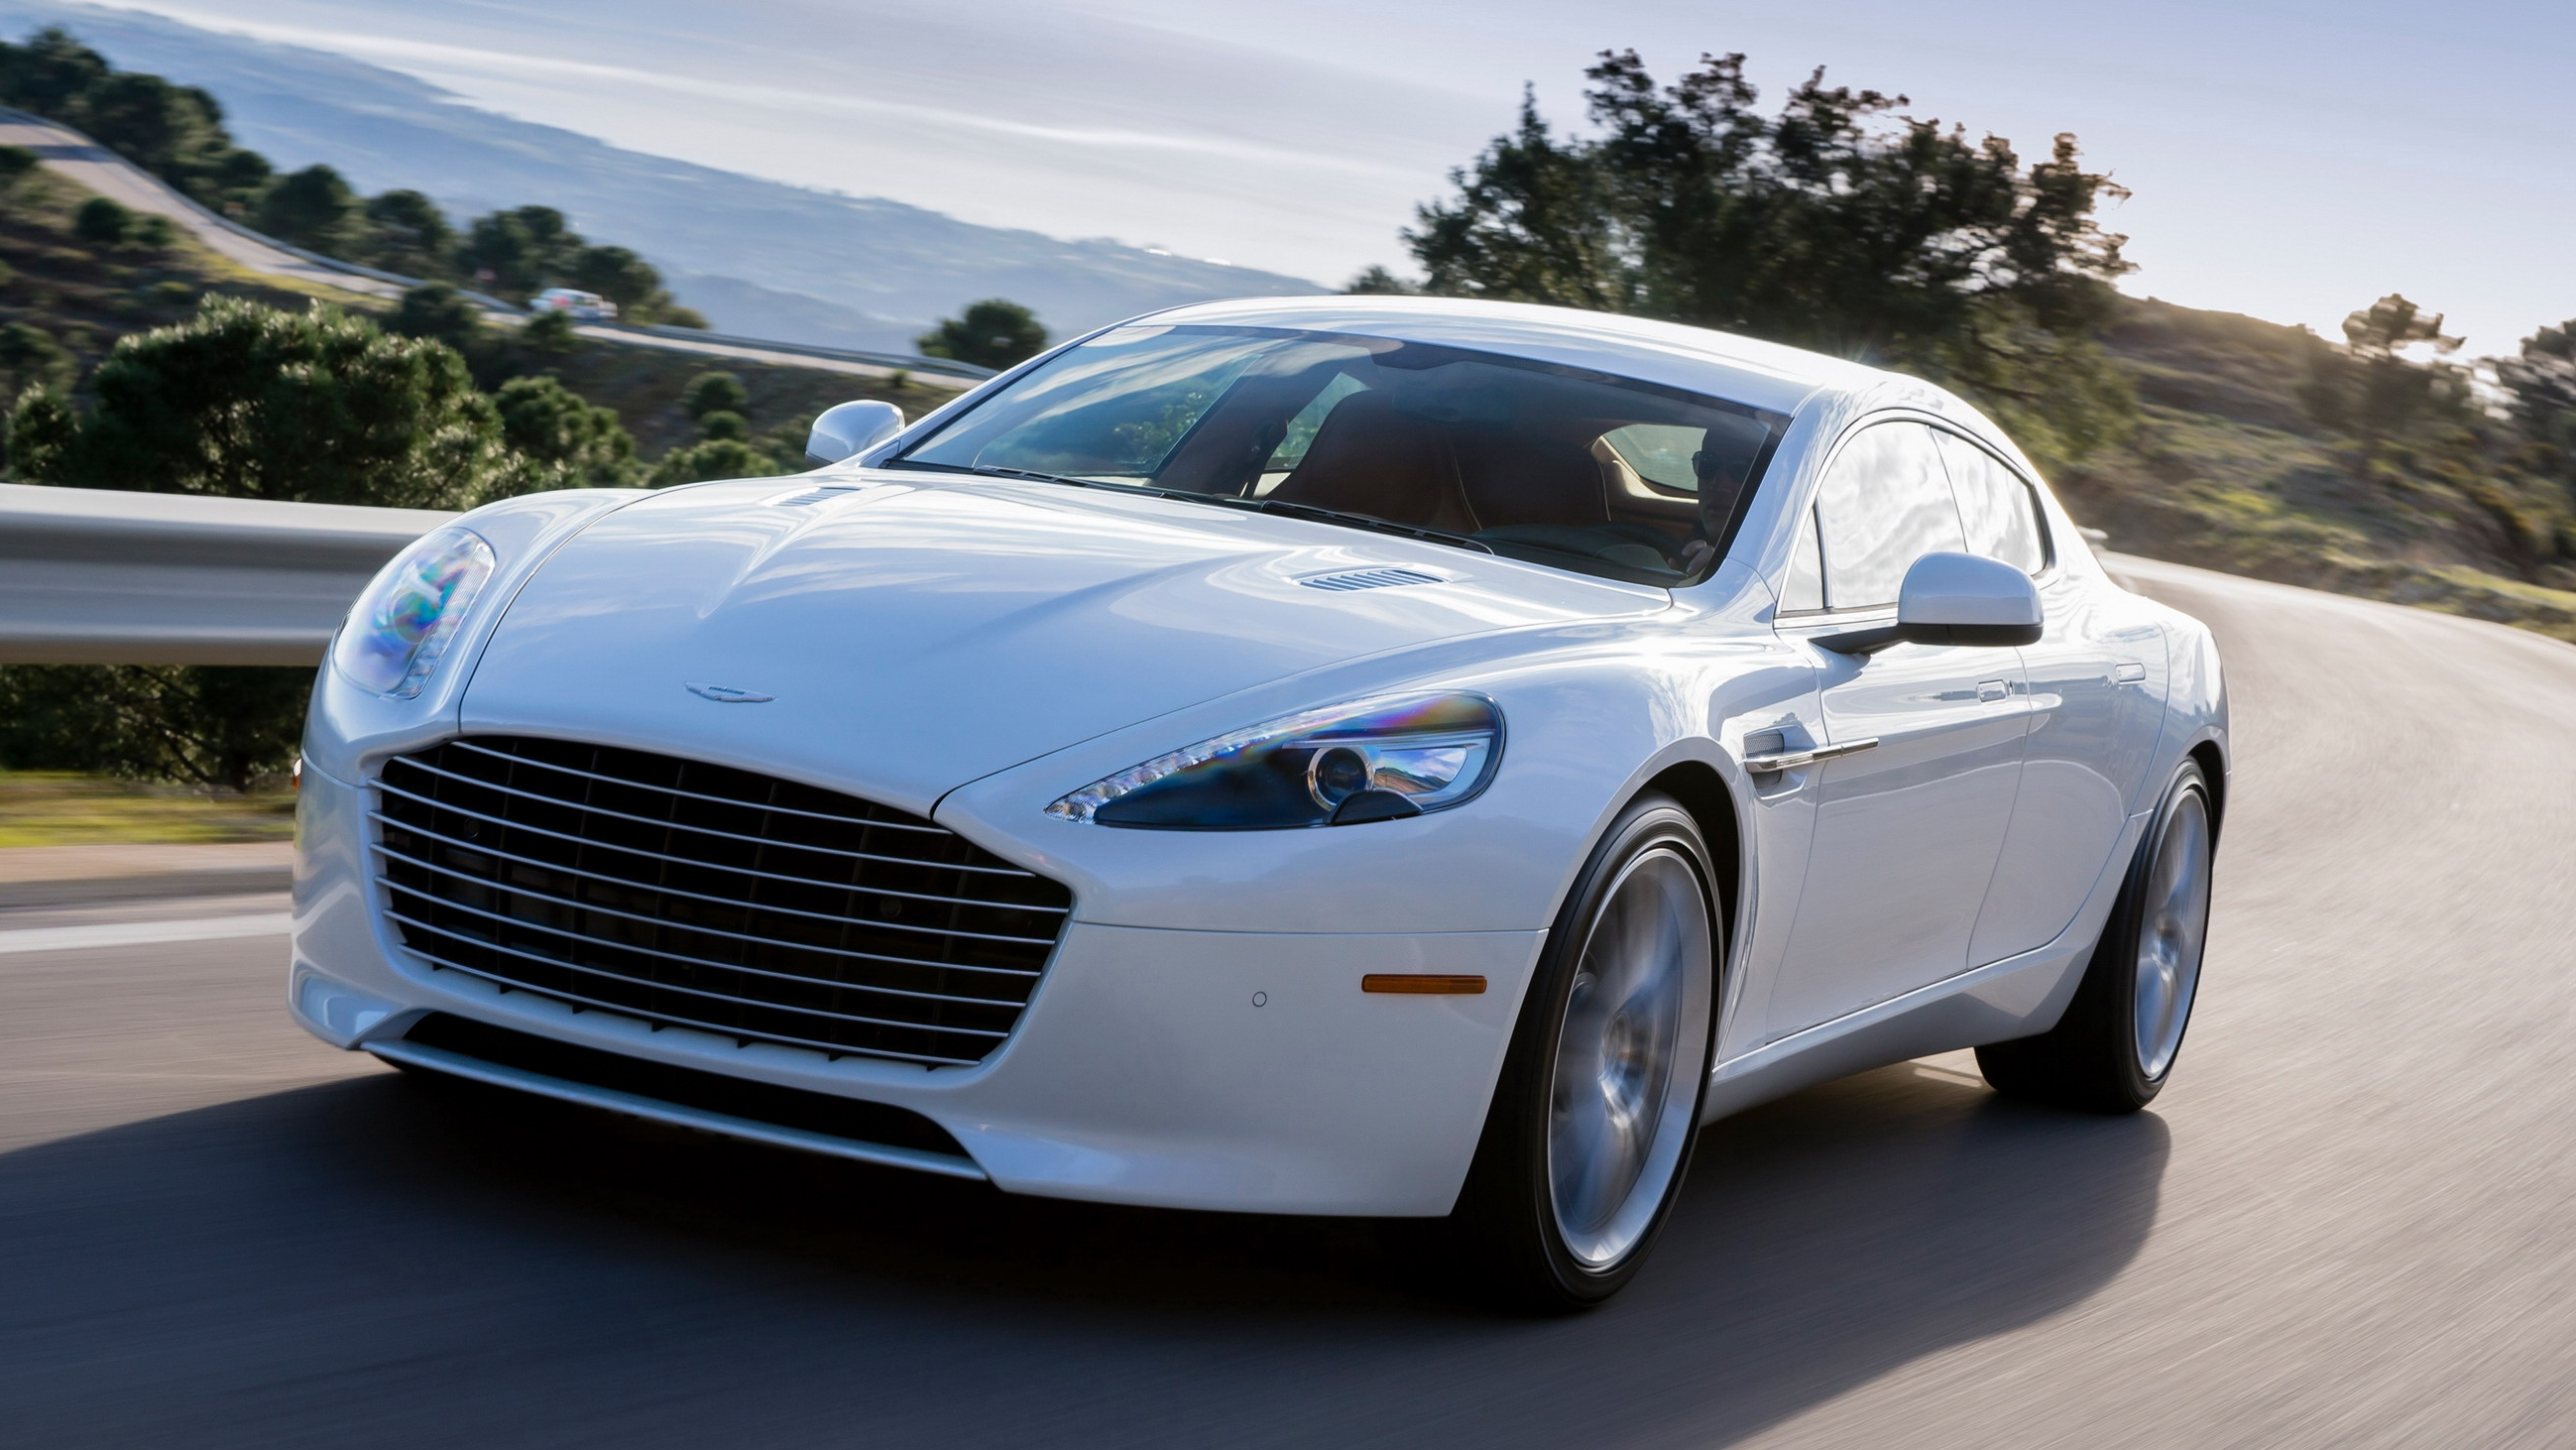 Aston Martin Rapide To Be Replaced By Global Lagonda Sedan And Dbx